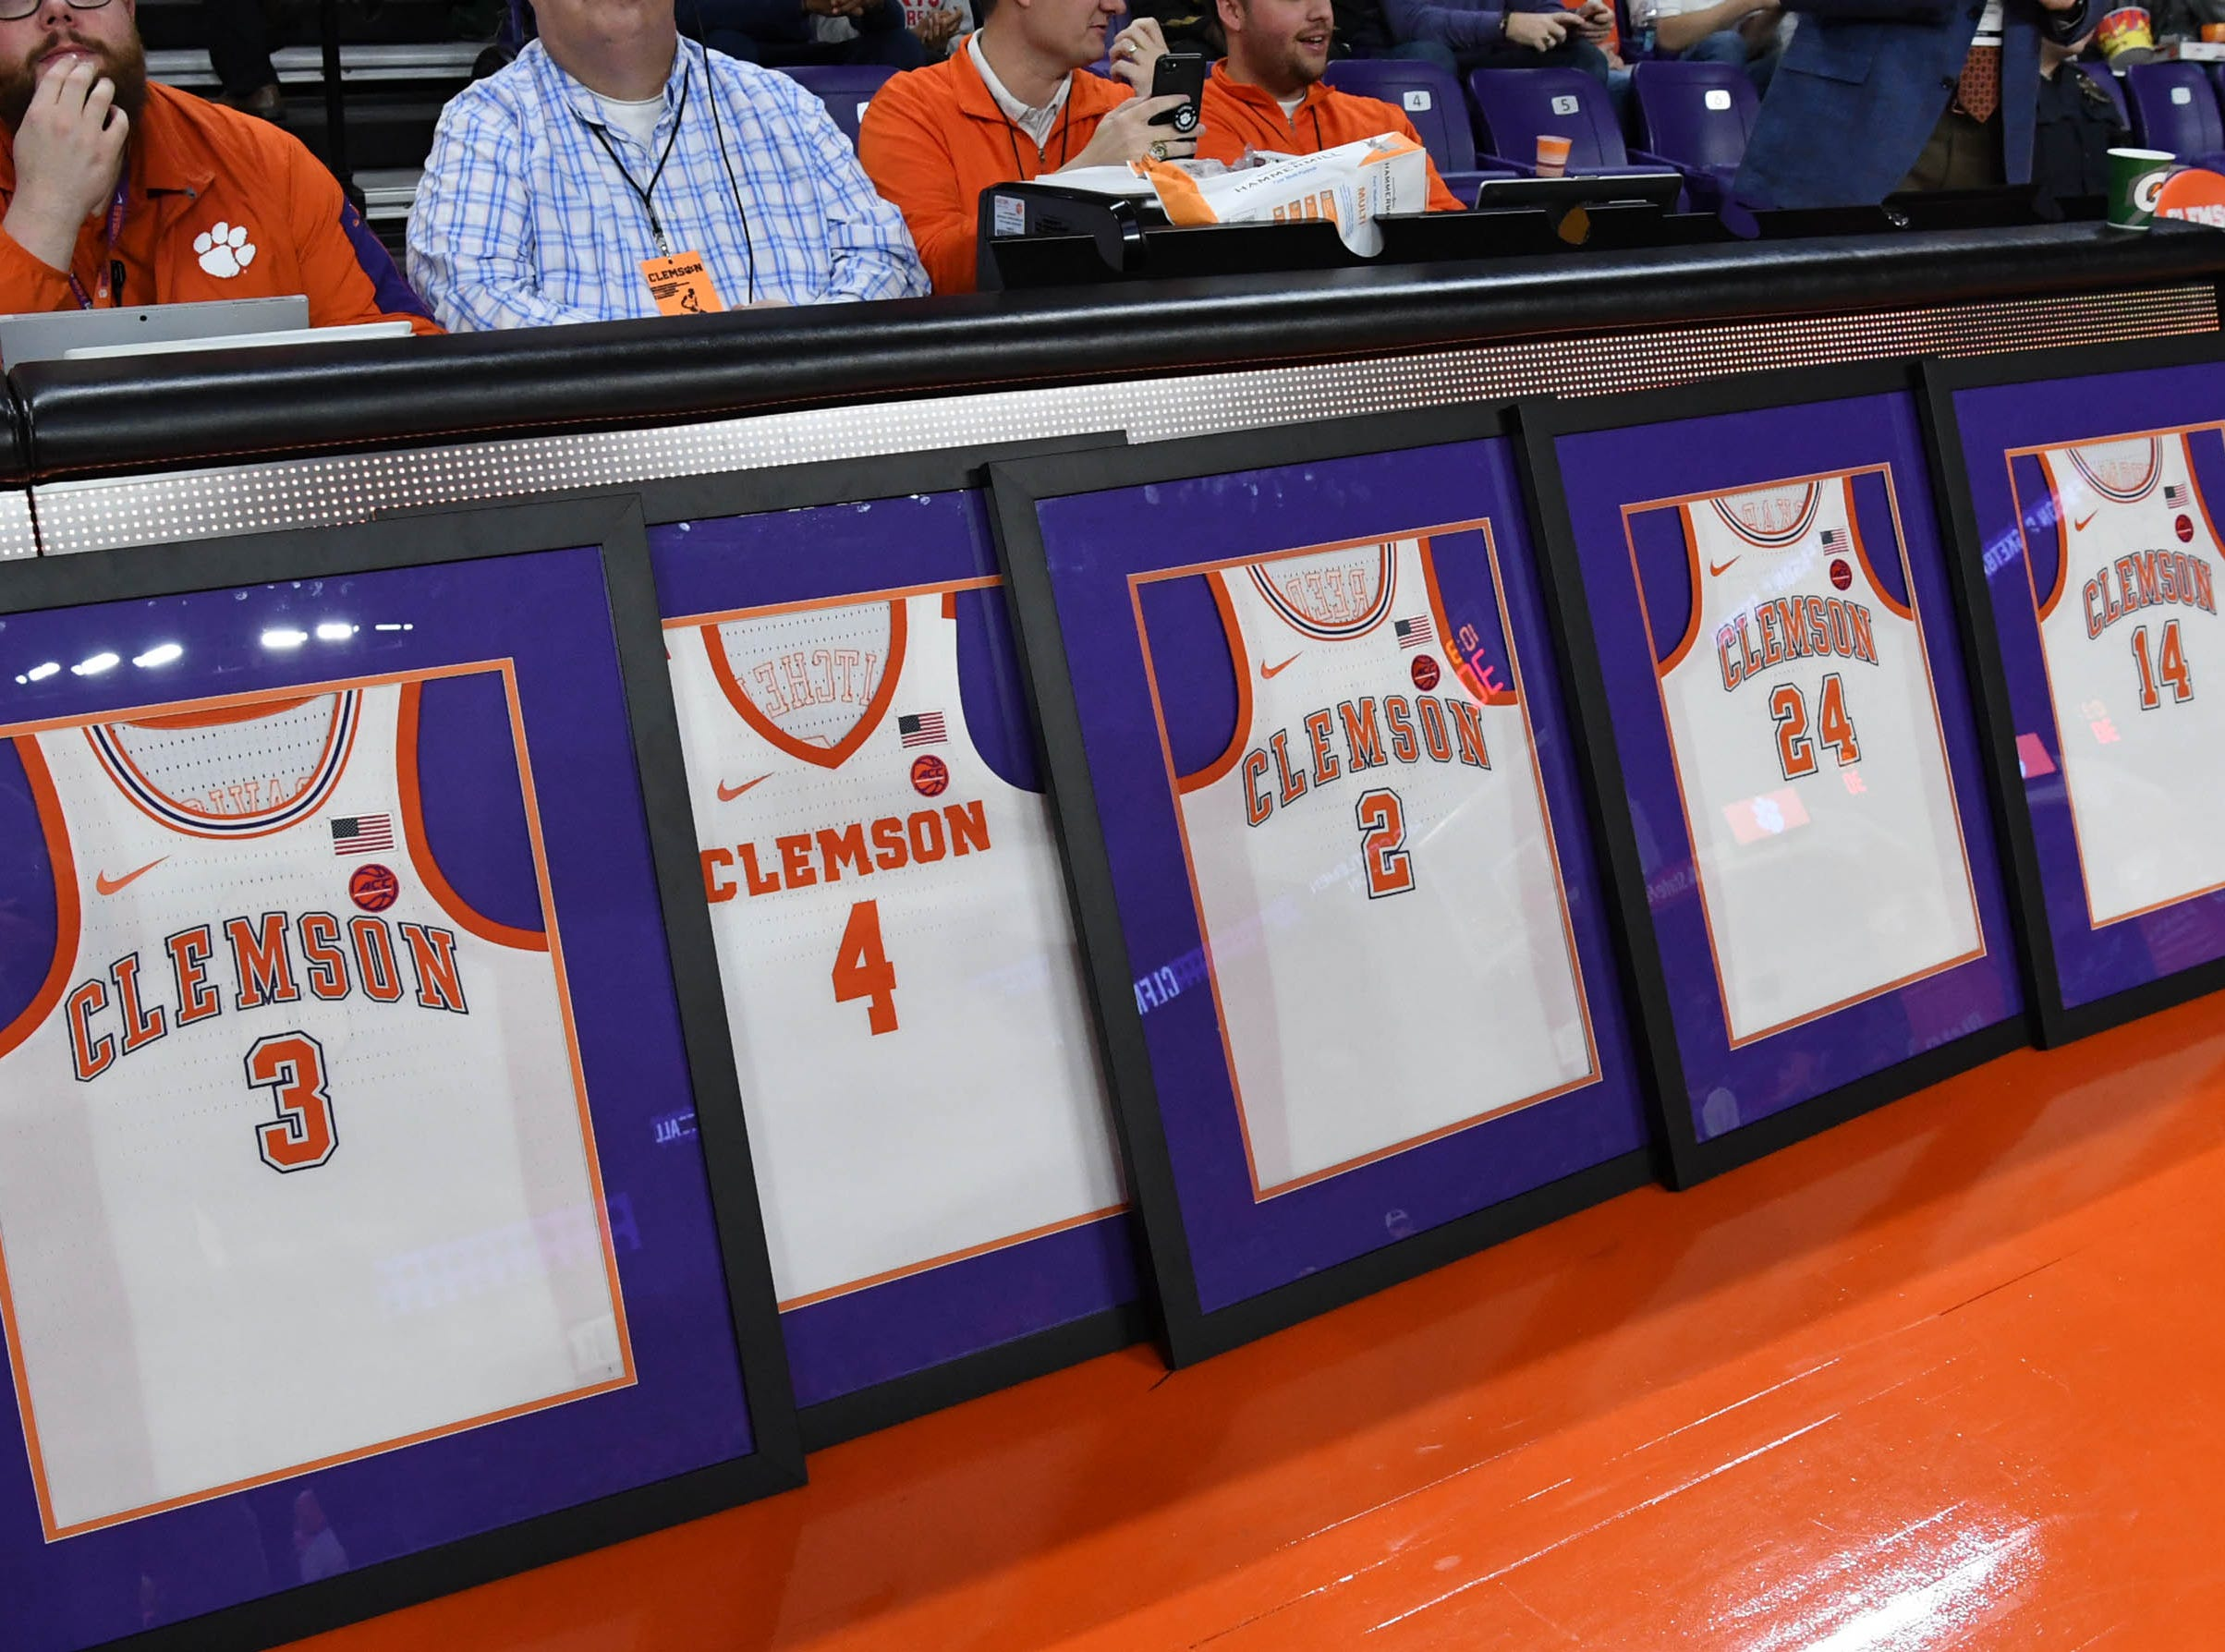 Clemson seniors were honored before the game with Syracuse in Littlejohn Coliseum in Clemson Saturday, March 9, 2019.